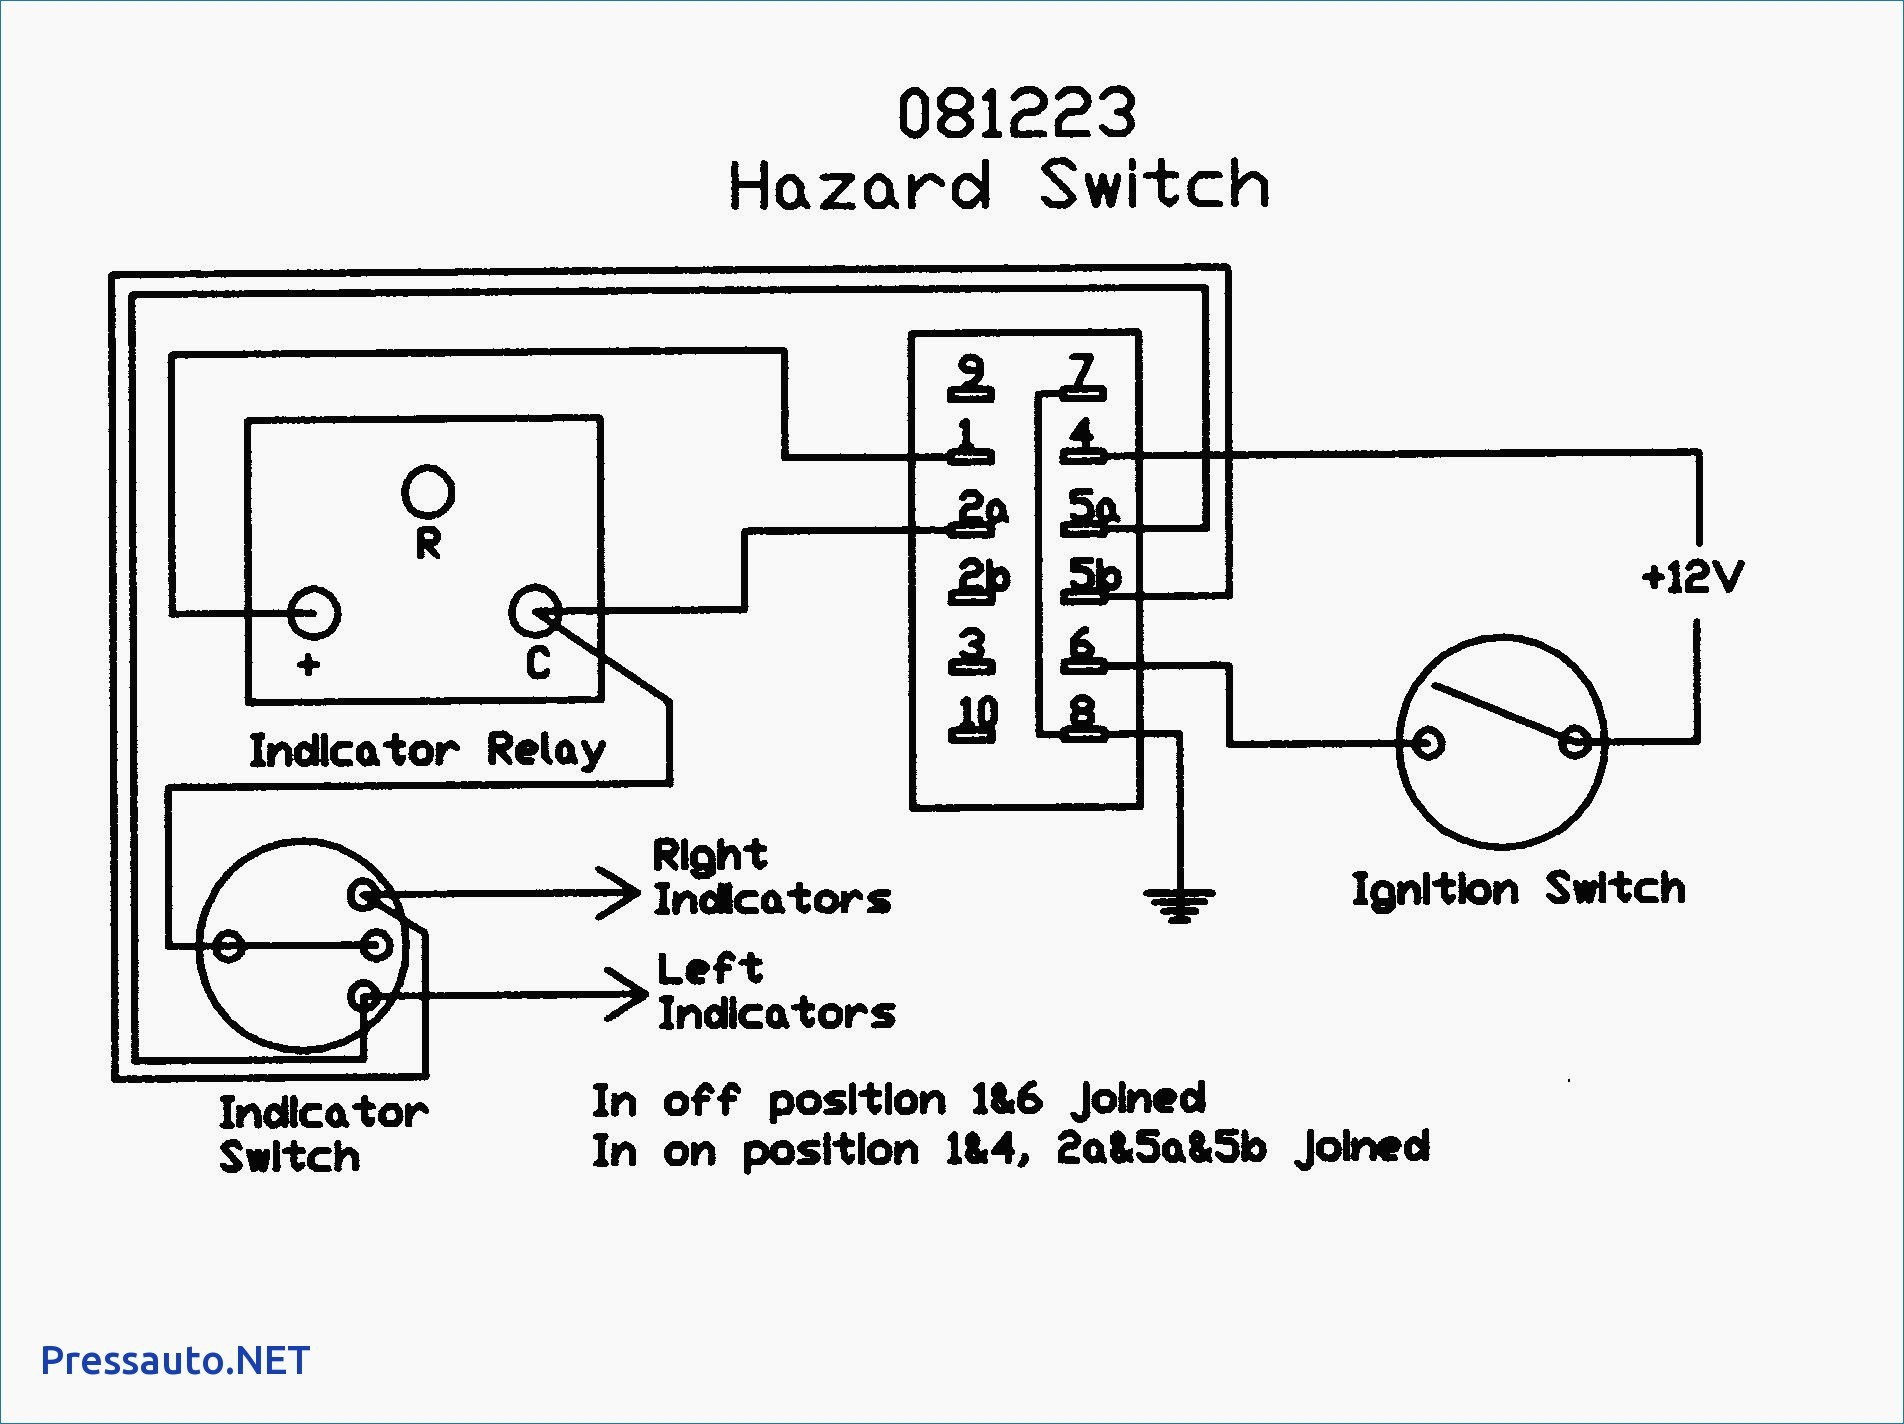 Winch Contactor Wiring Diagram Champion Winch Wiring Diagram Wiring solutions Of Winch Contactor Wiring Diagram